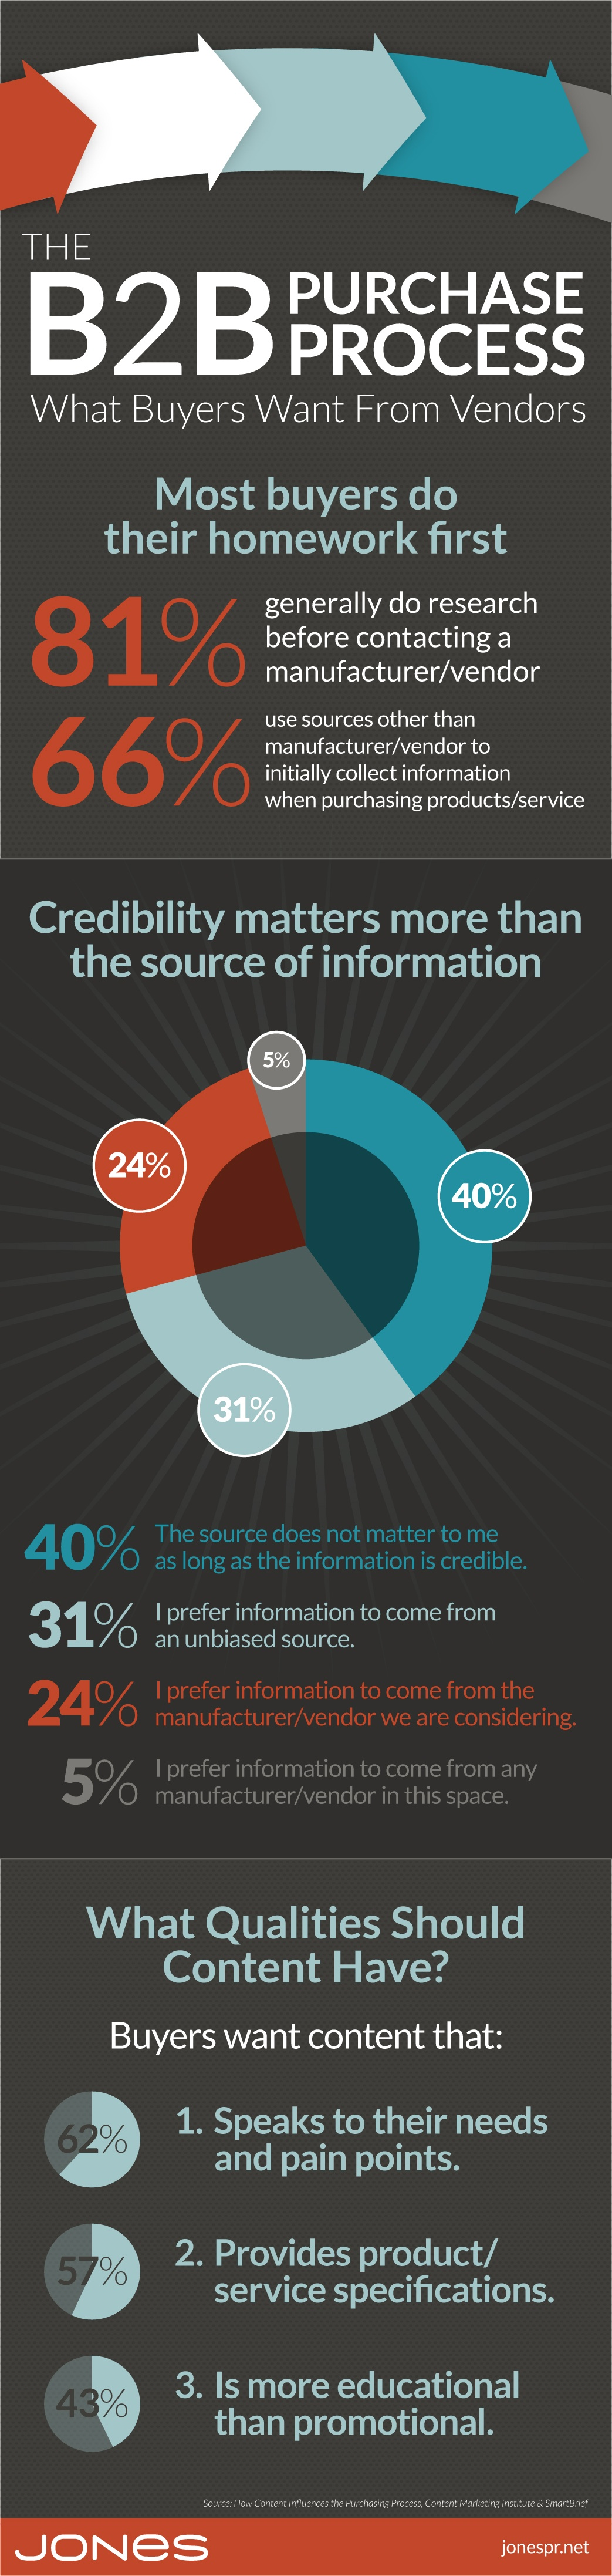 JONES-infographic-B2B-content-influences-purchase